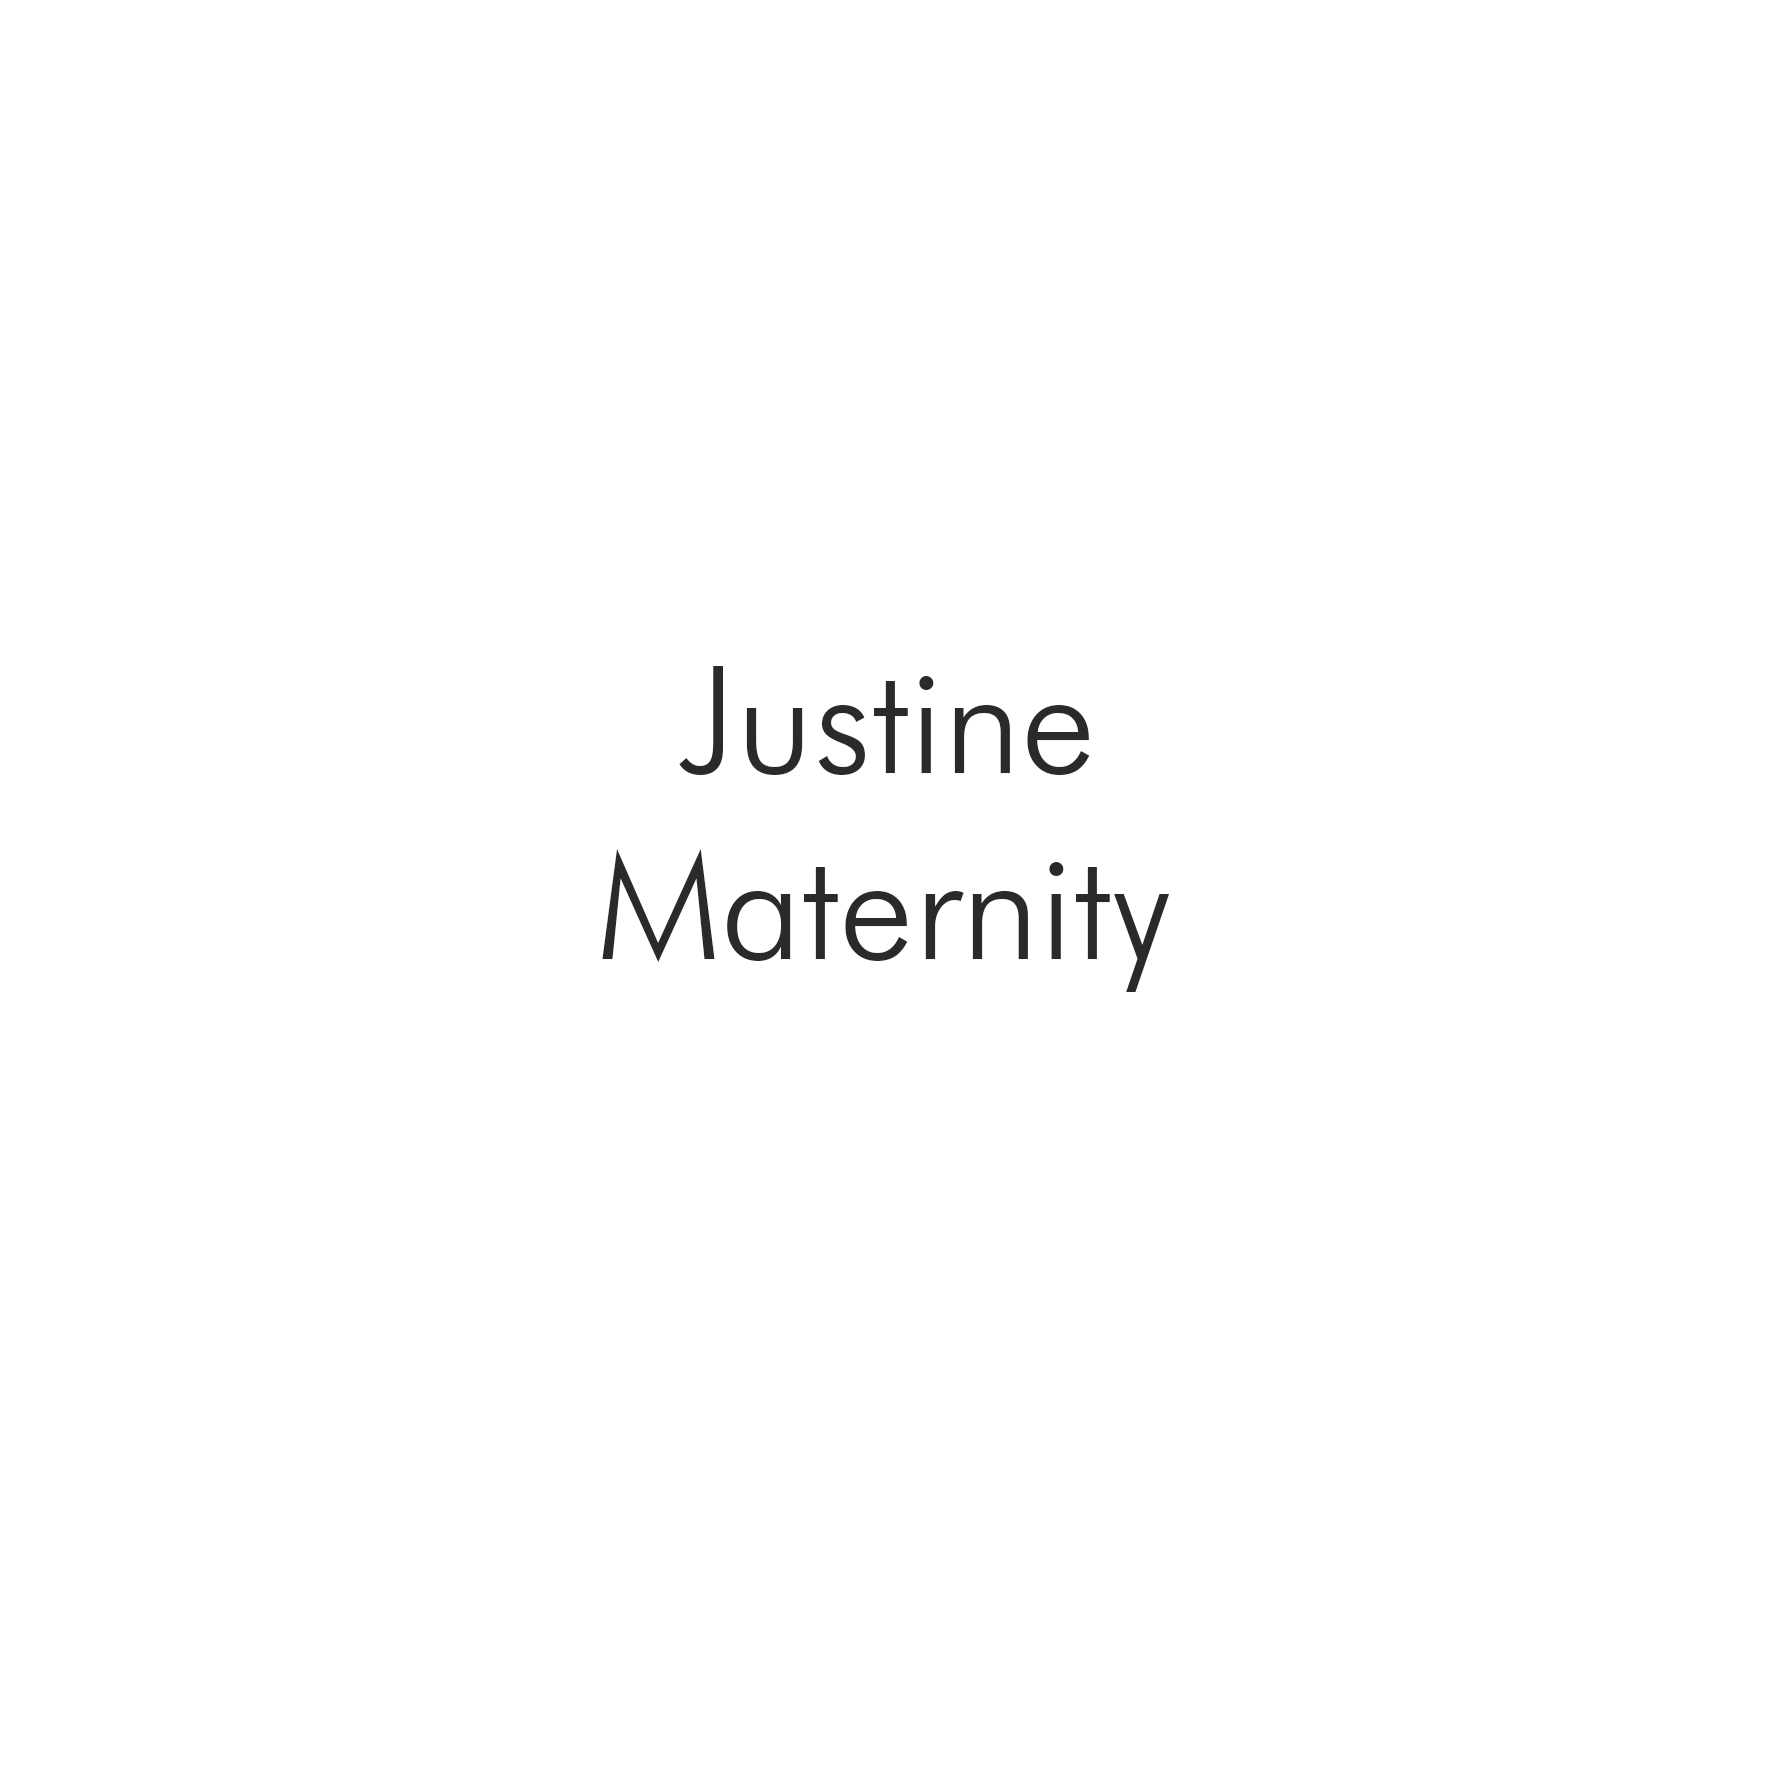 Justine Maternity.png